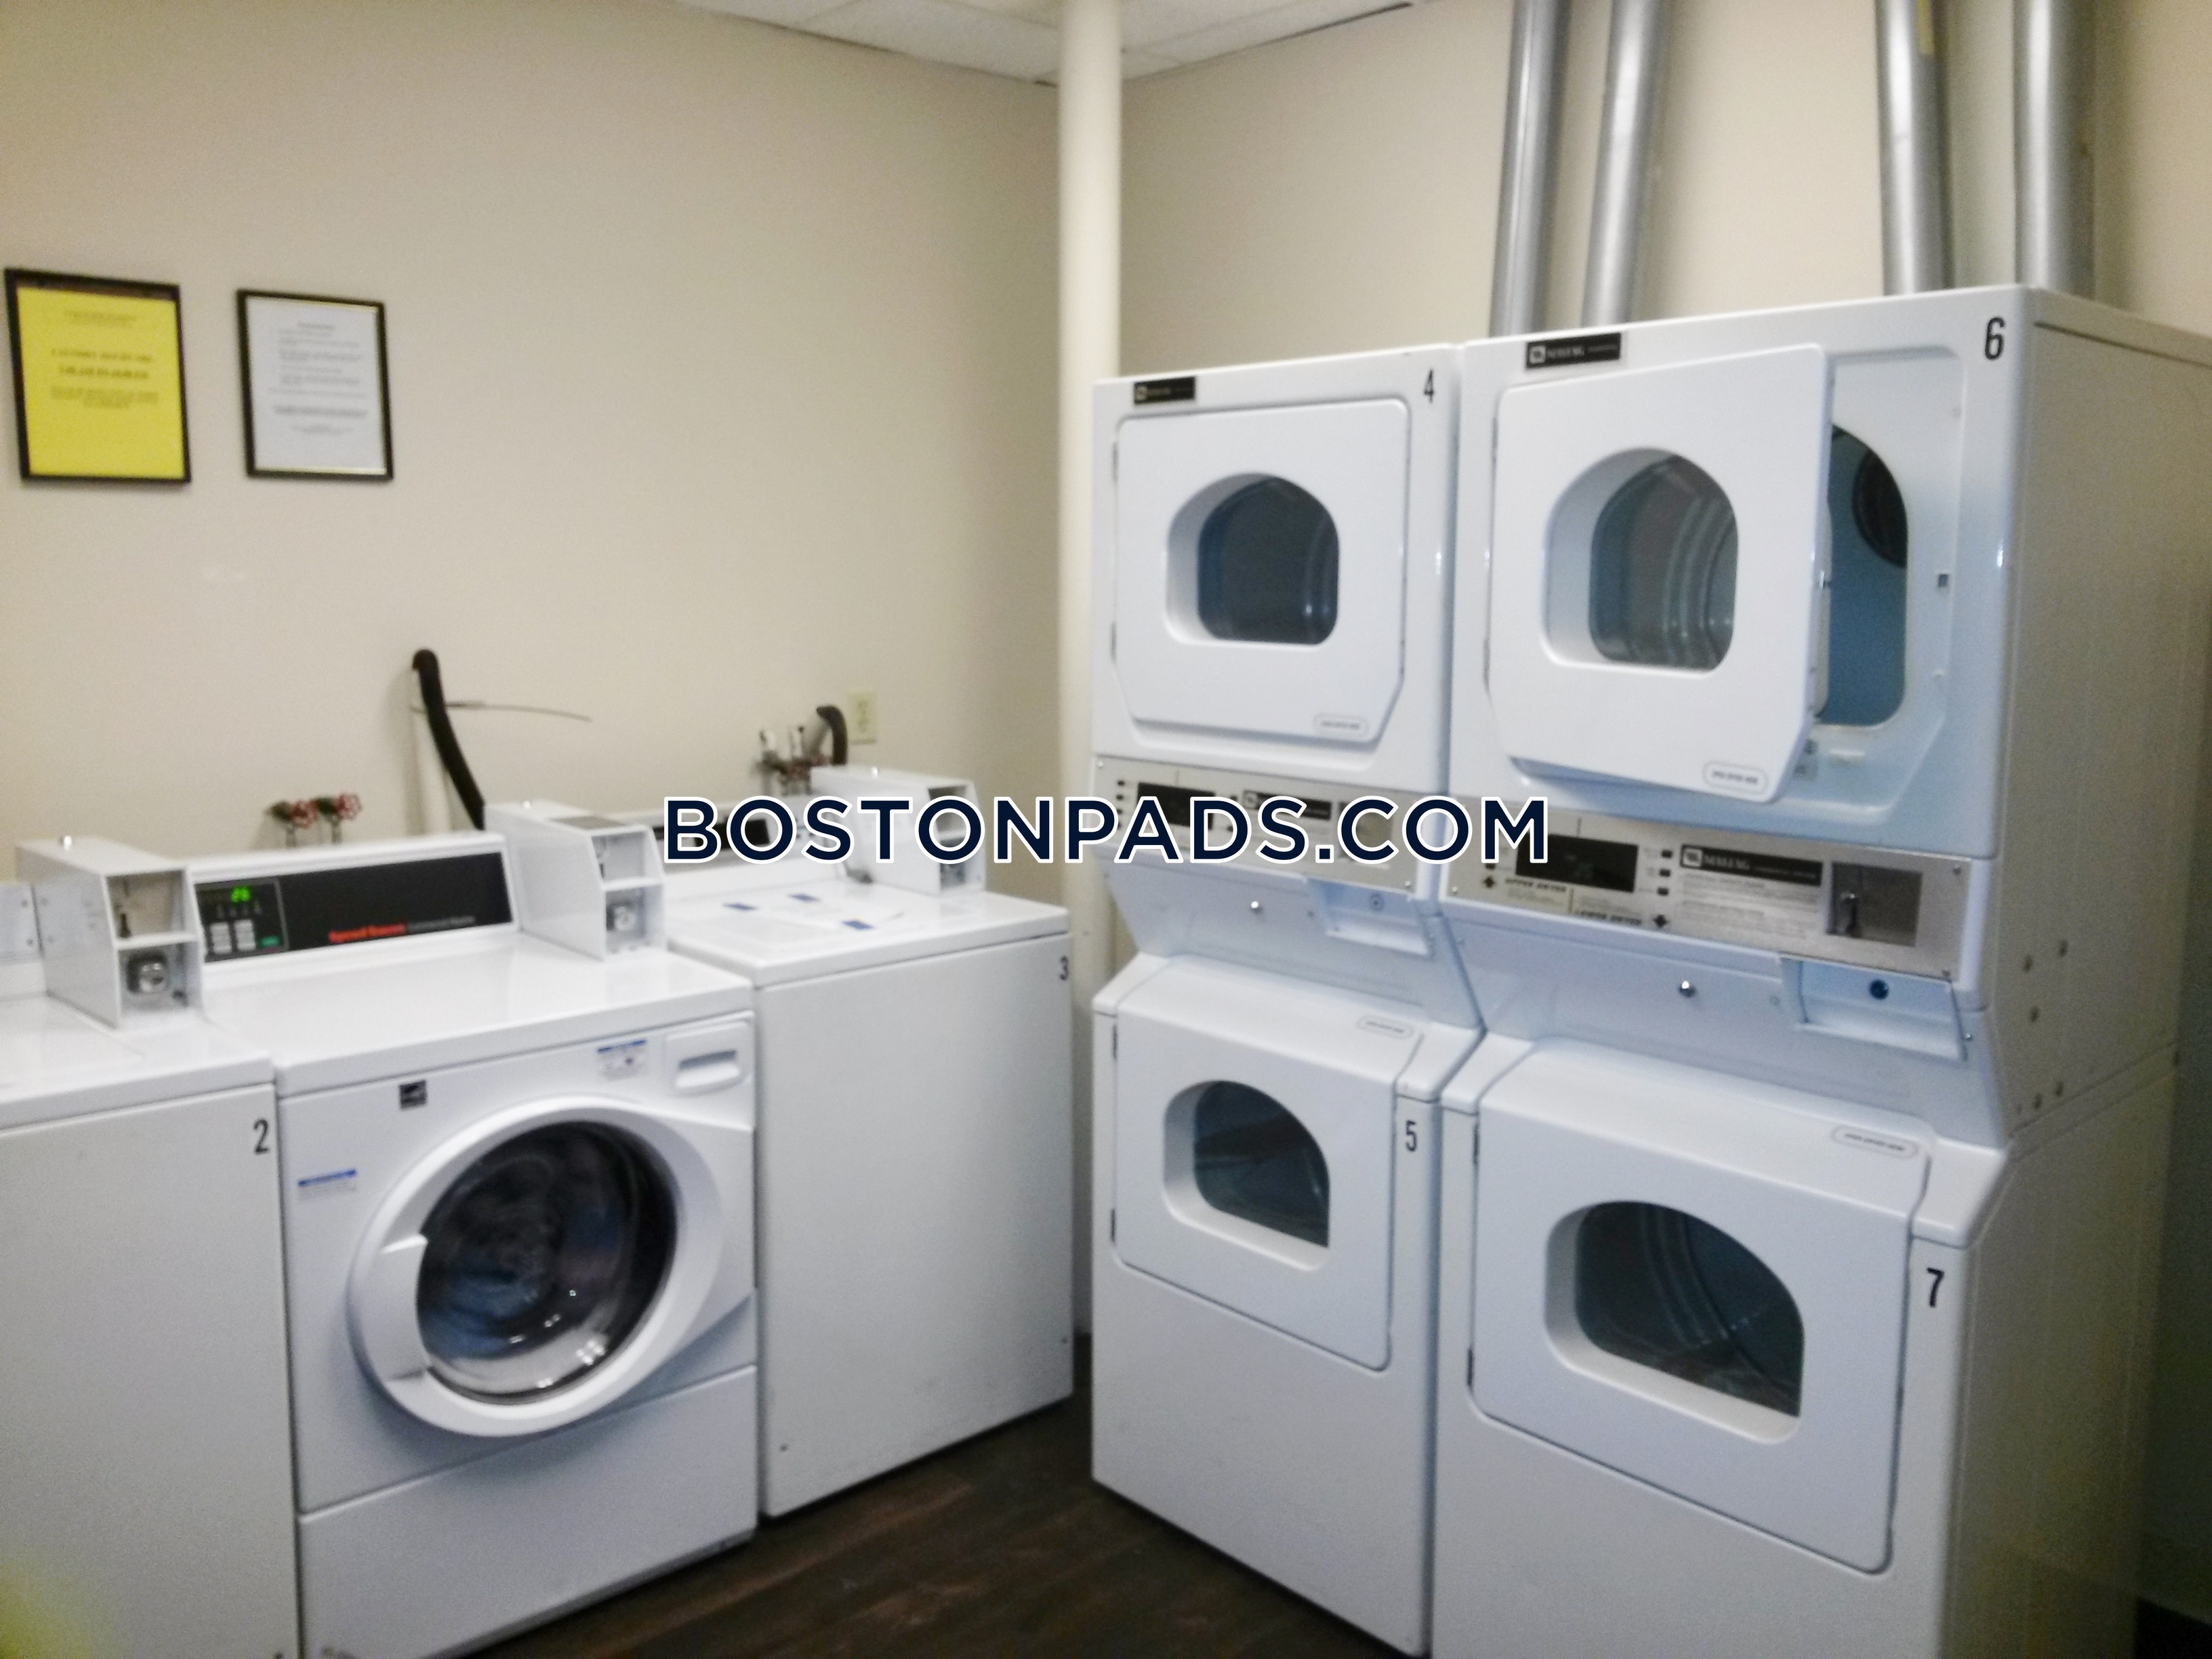 2 Beds 1 Baths - BOSTON - Fenway/Kenmore $2,550